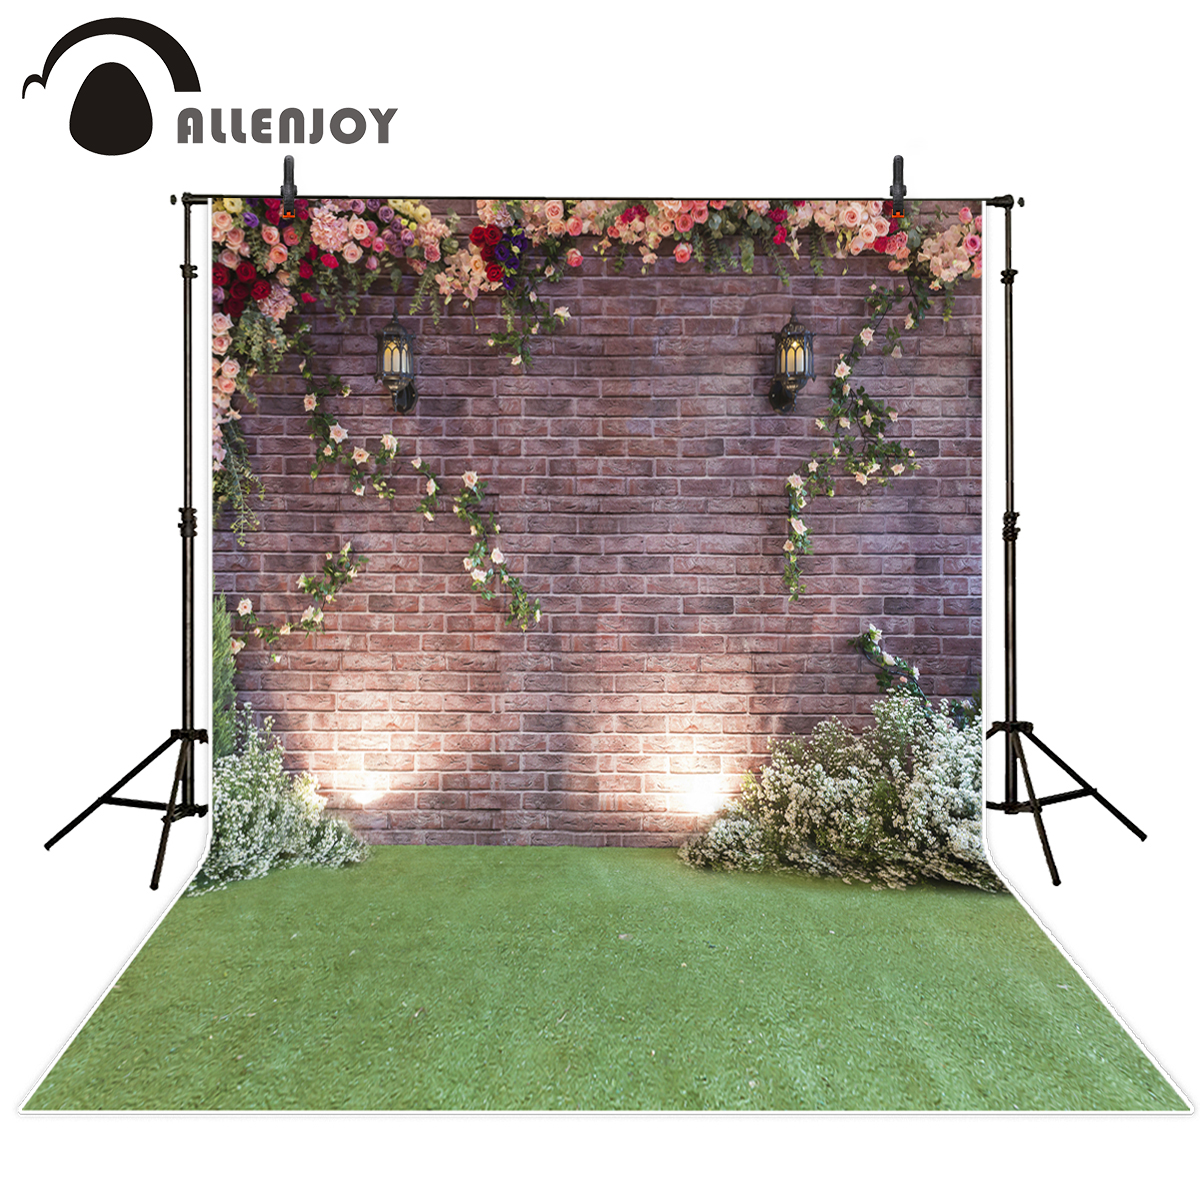 Allenjoy photography background brick wall lawn flower wedding or baby and newborn for photos background for photographic studio